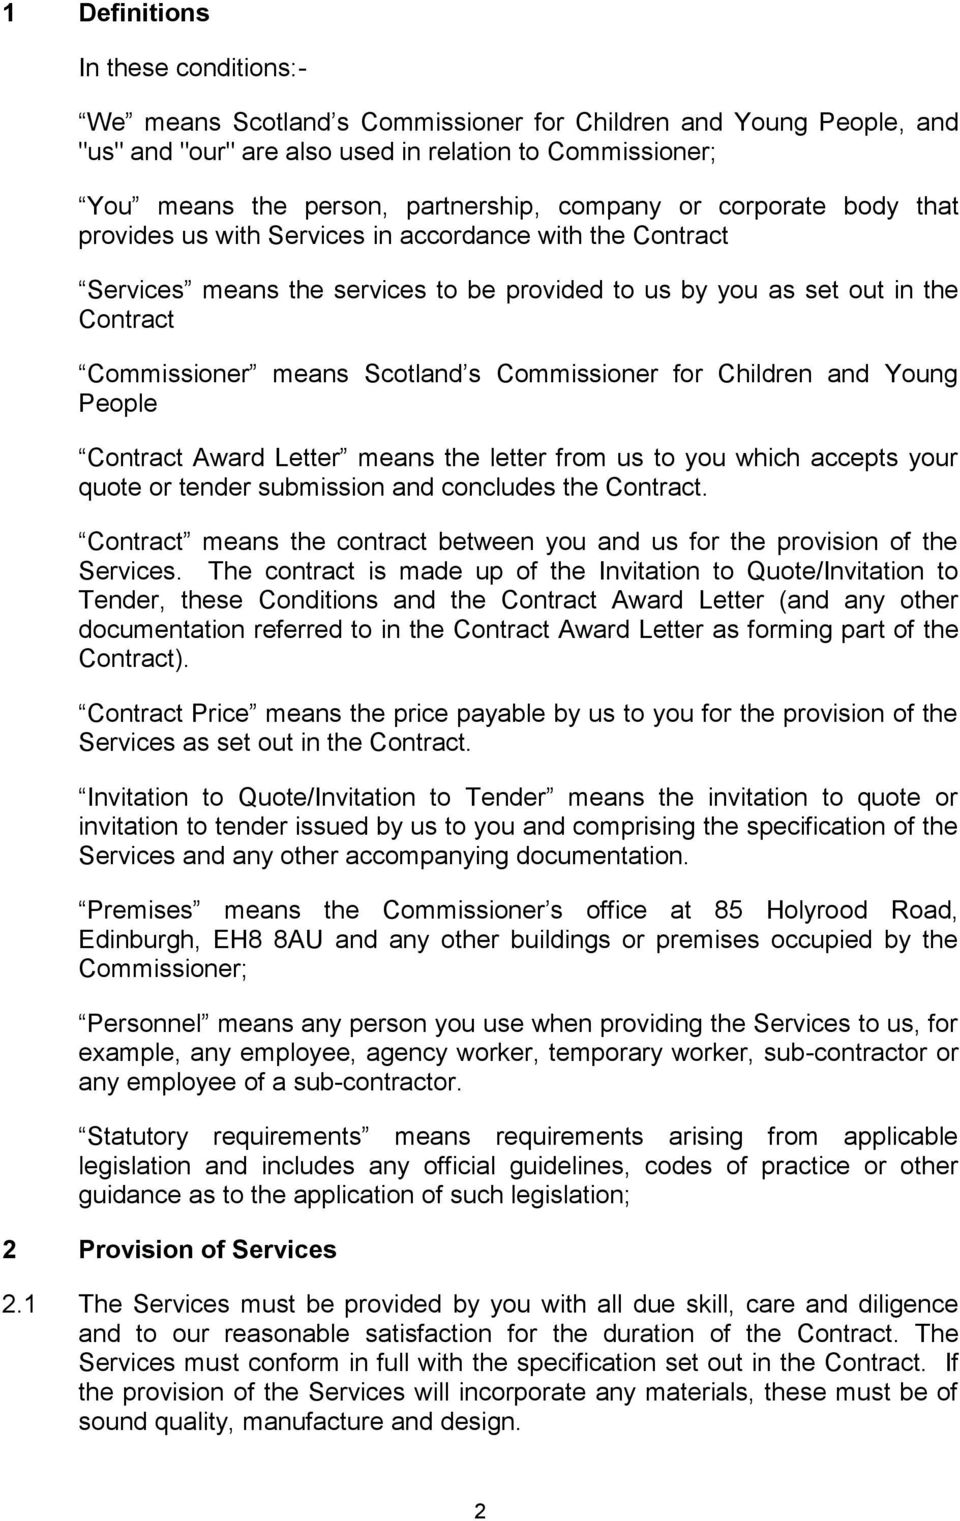 s Commissioner for Children and Young People Contract Award Letter means the letter from us to you which accepts your quote or tender submission and concludes the Contract.